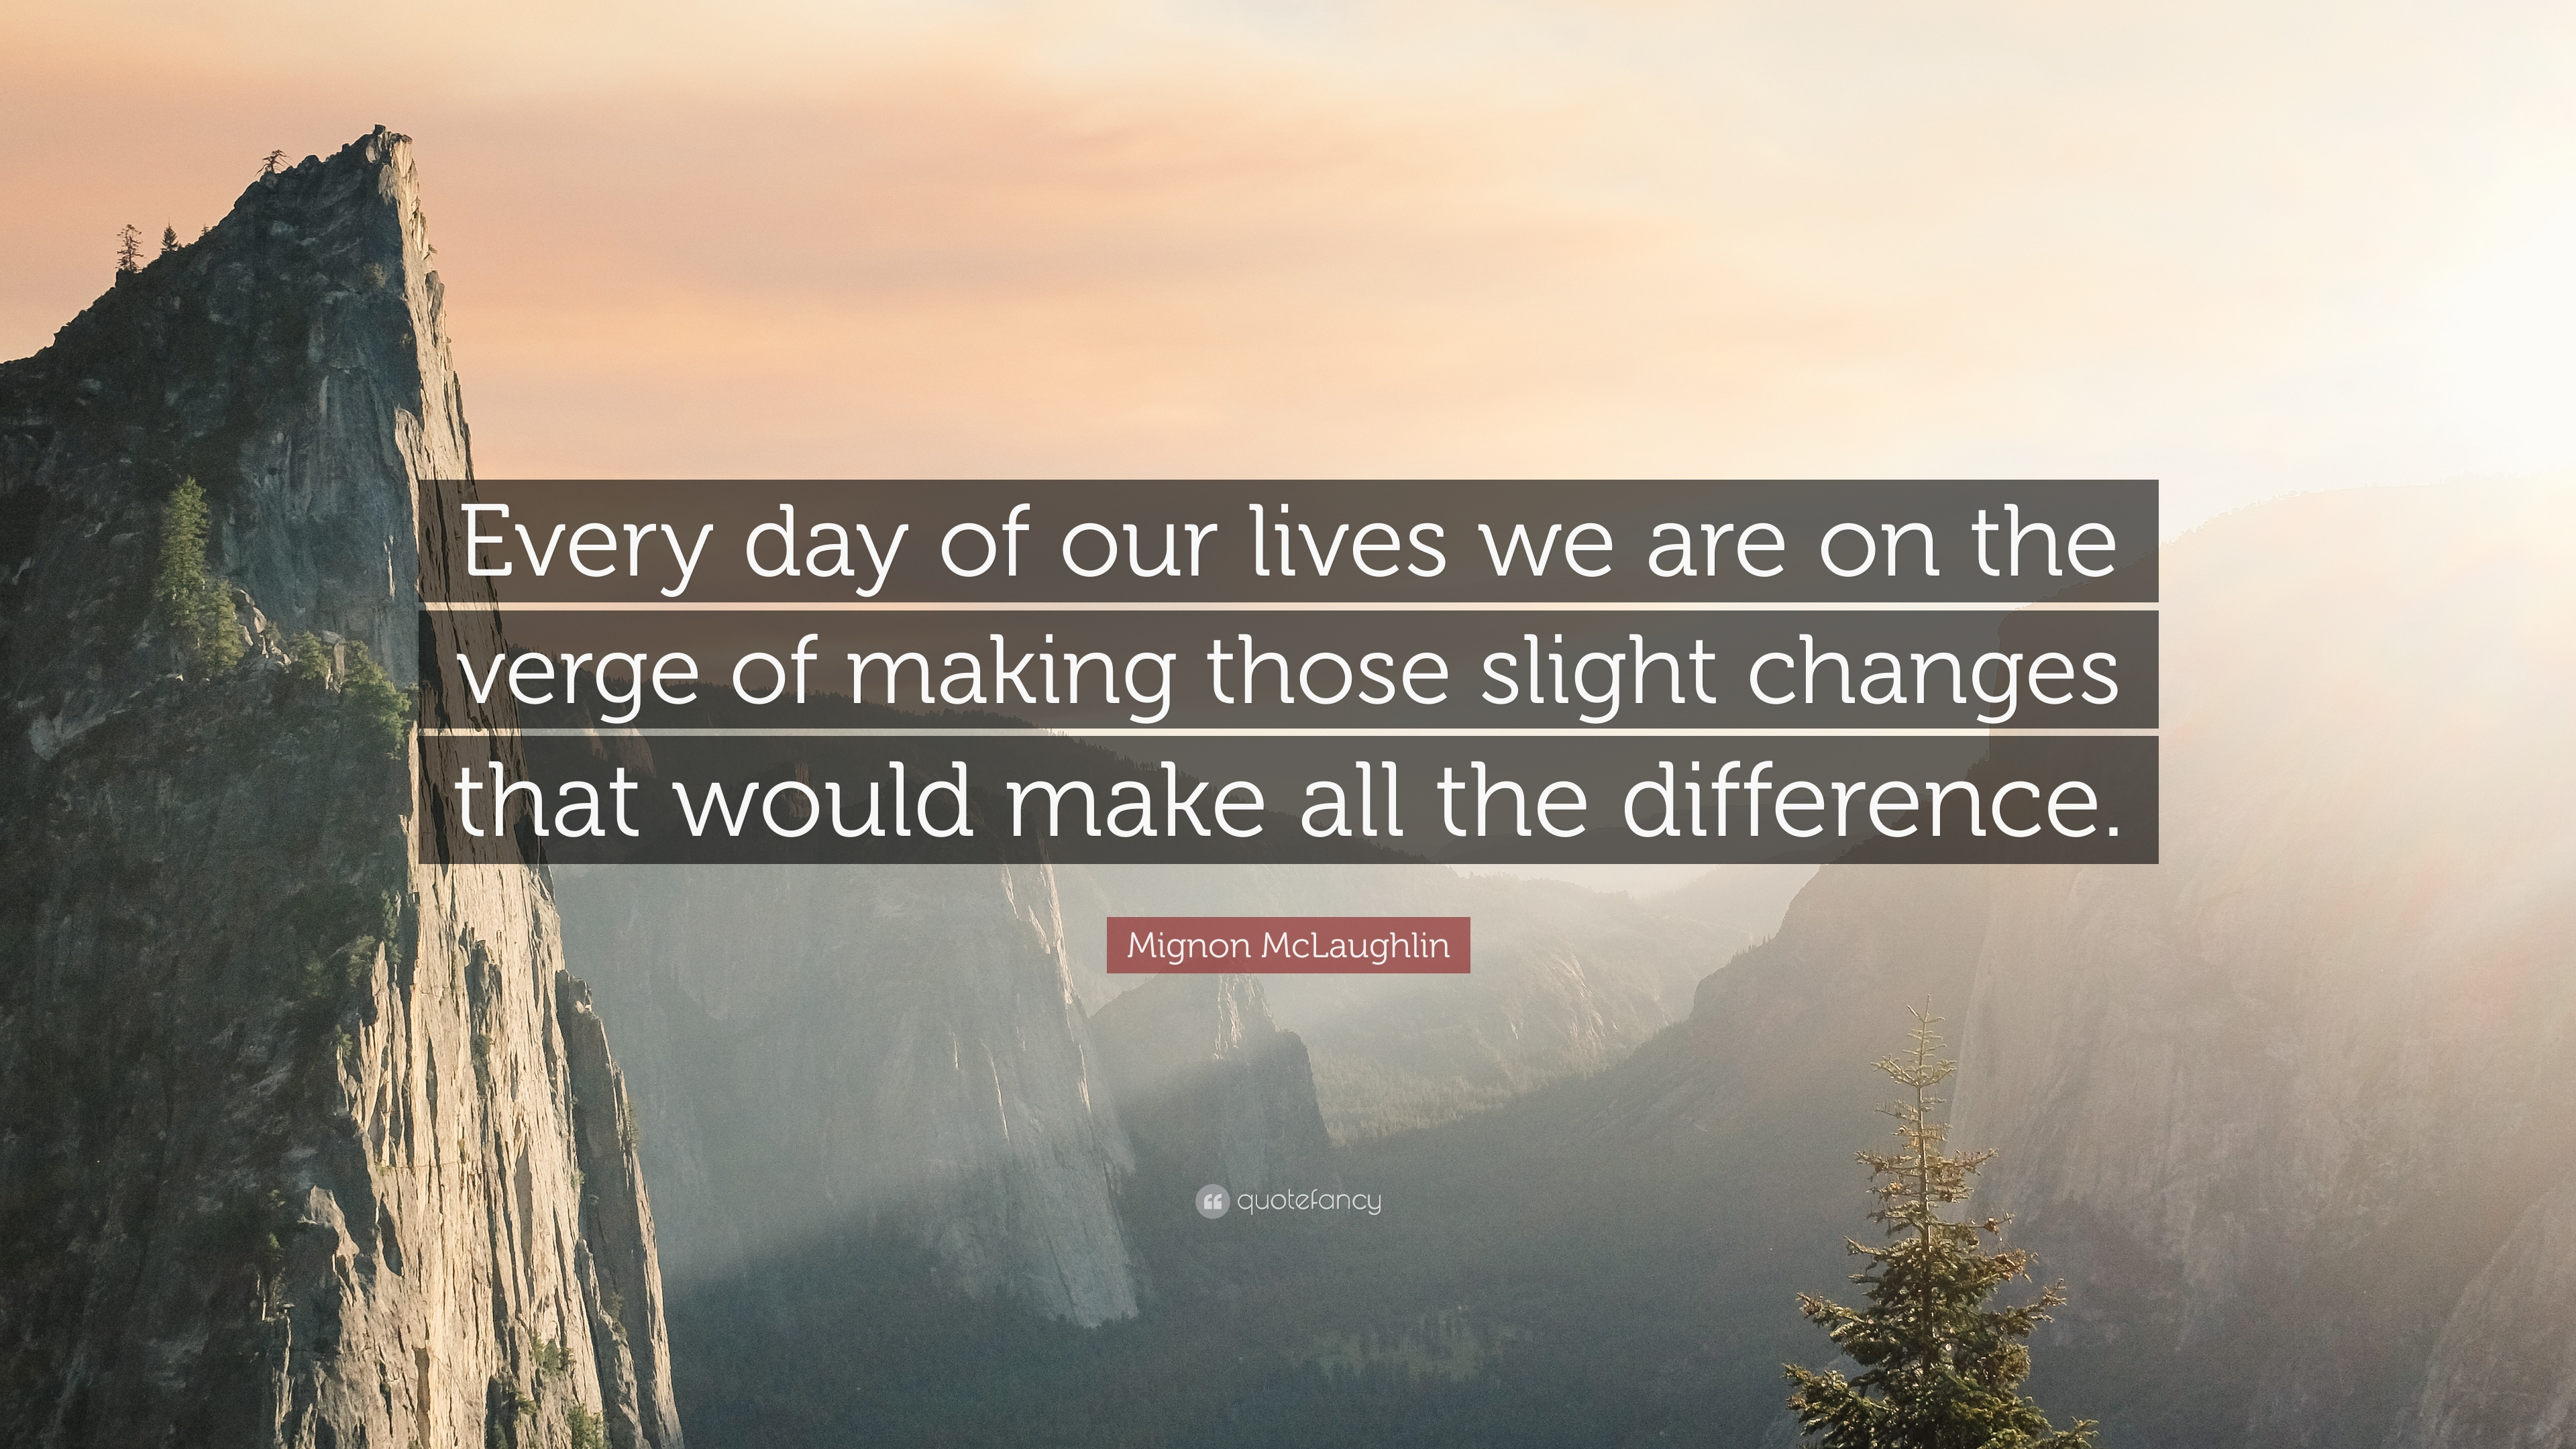 Mignon Mclaughlin Quote Every Day Of Our Lives We Are On The Verge